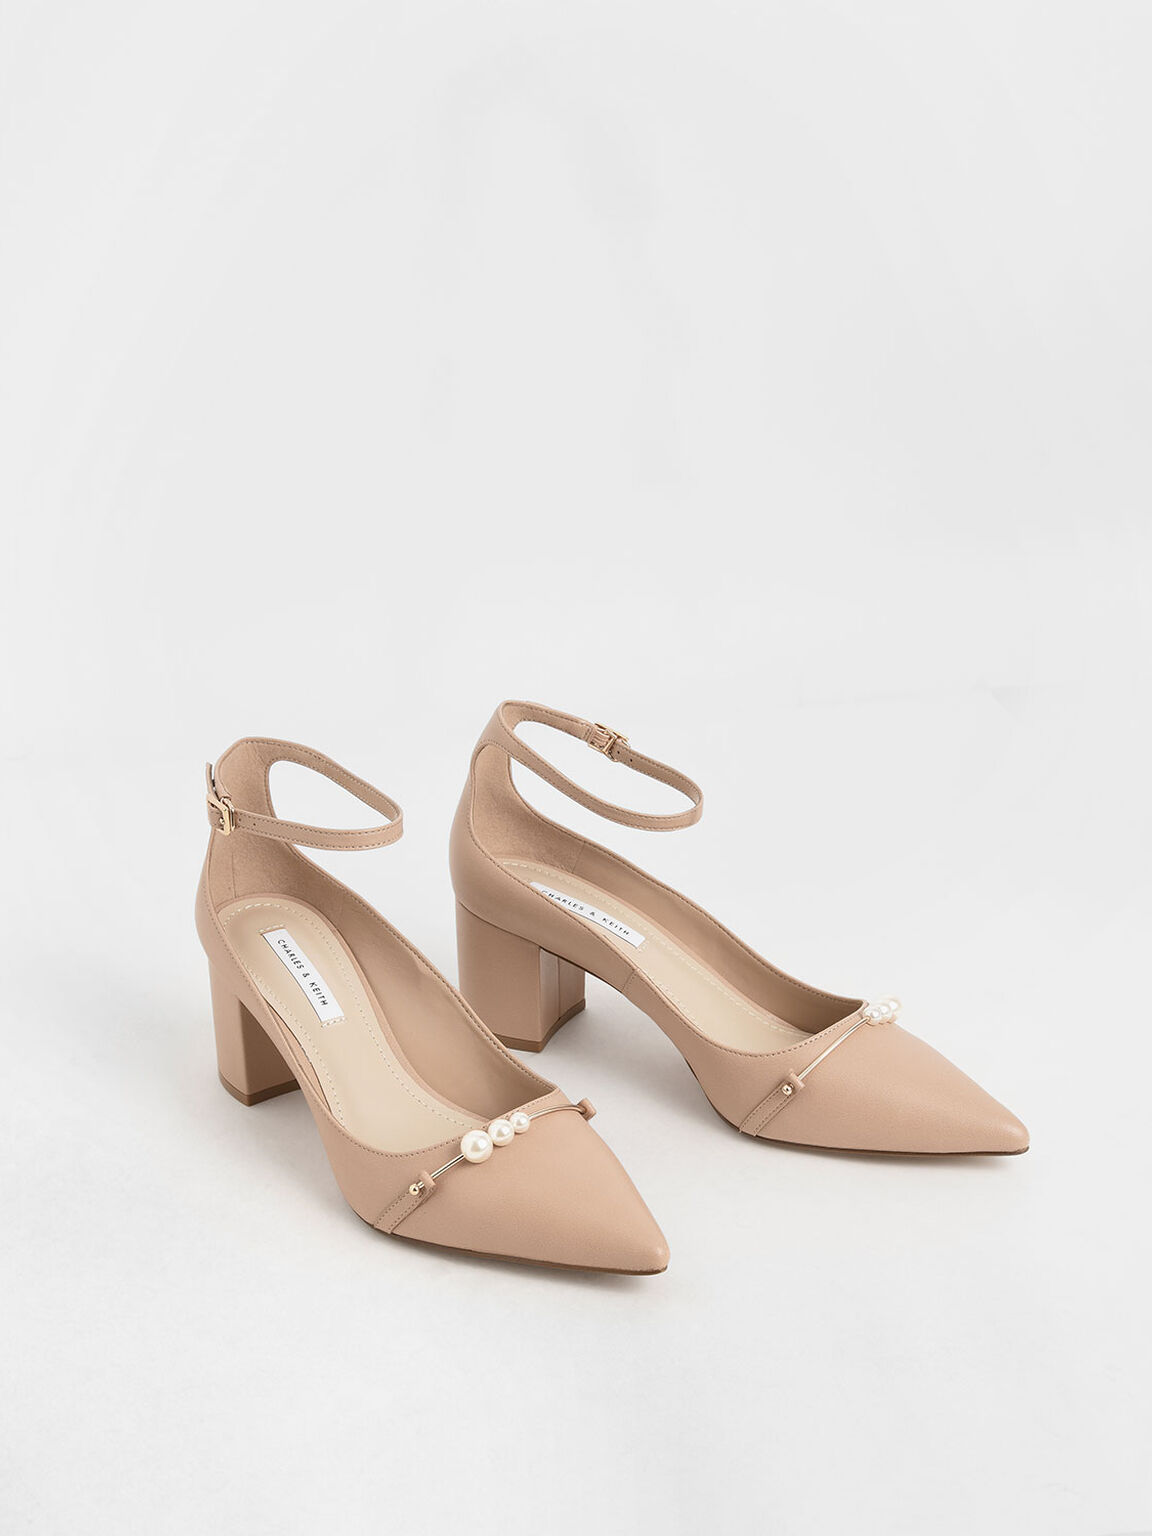 Embellished Pointed Toe Pumps, Nude, hi-res